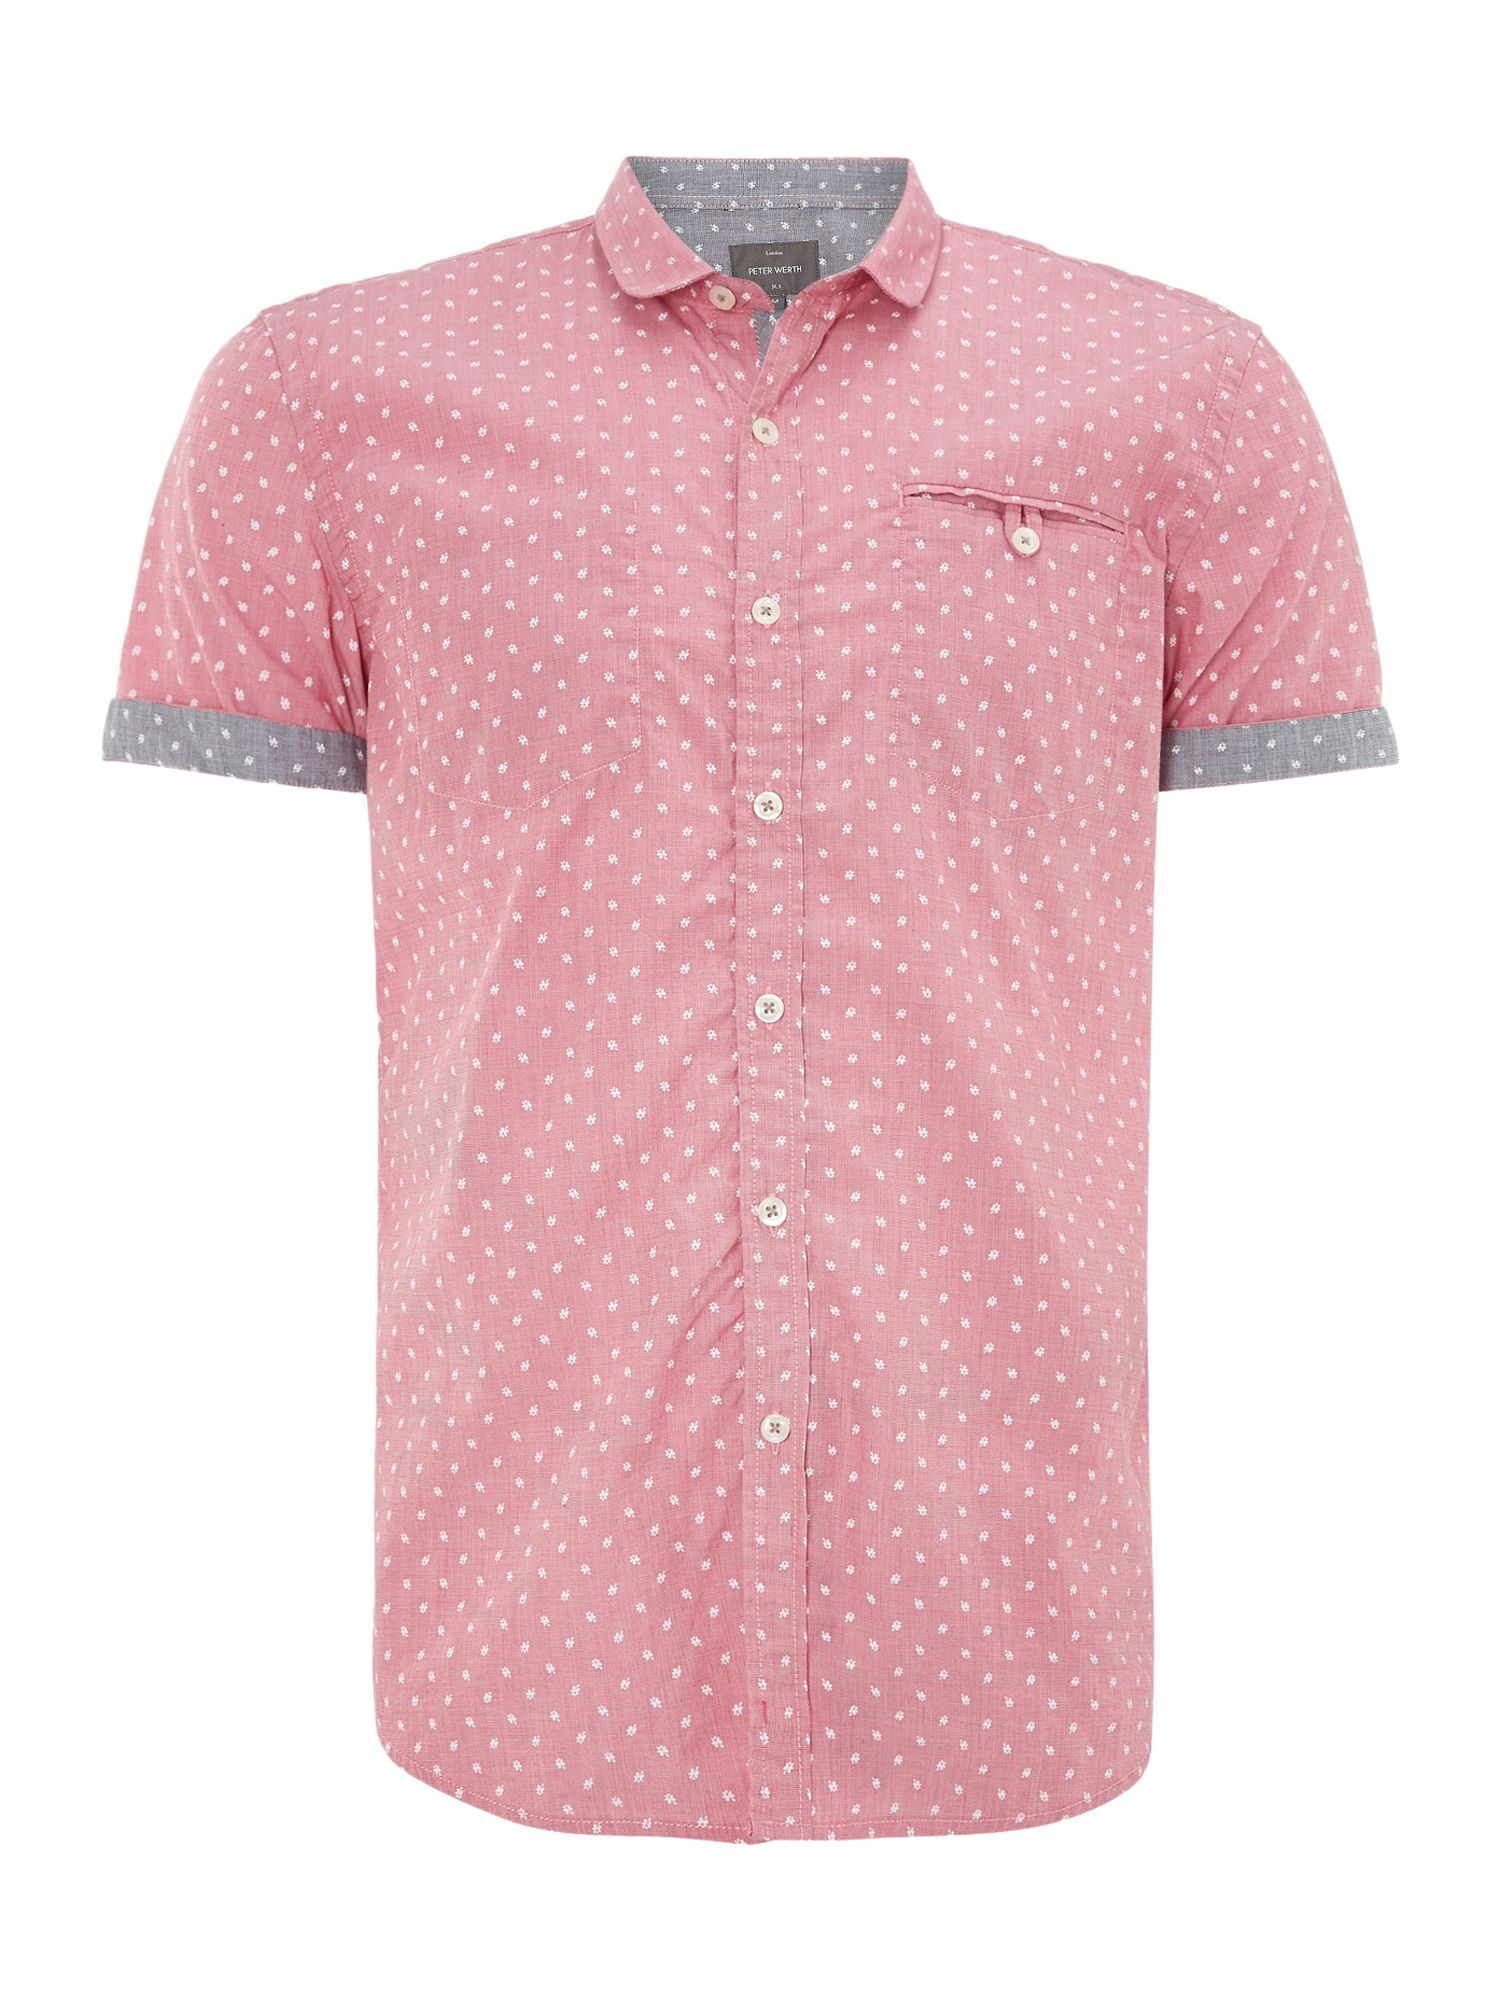 Windmill short sleeve shirt